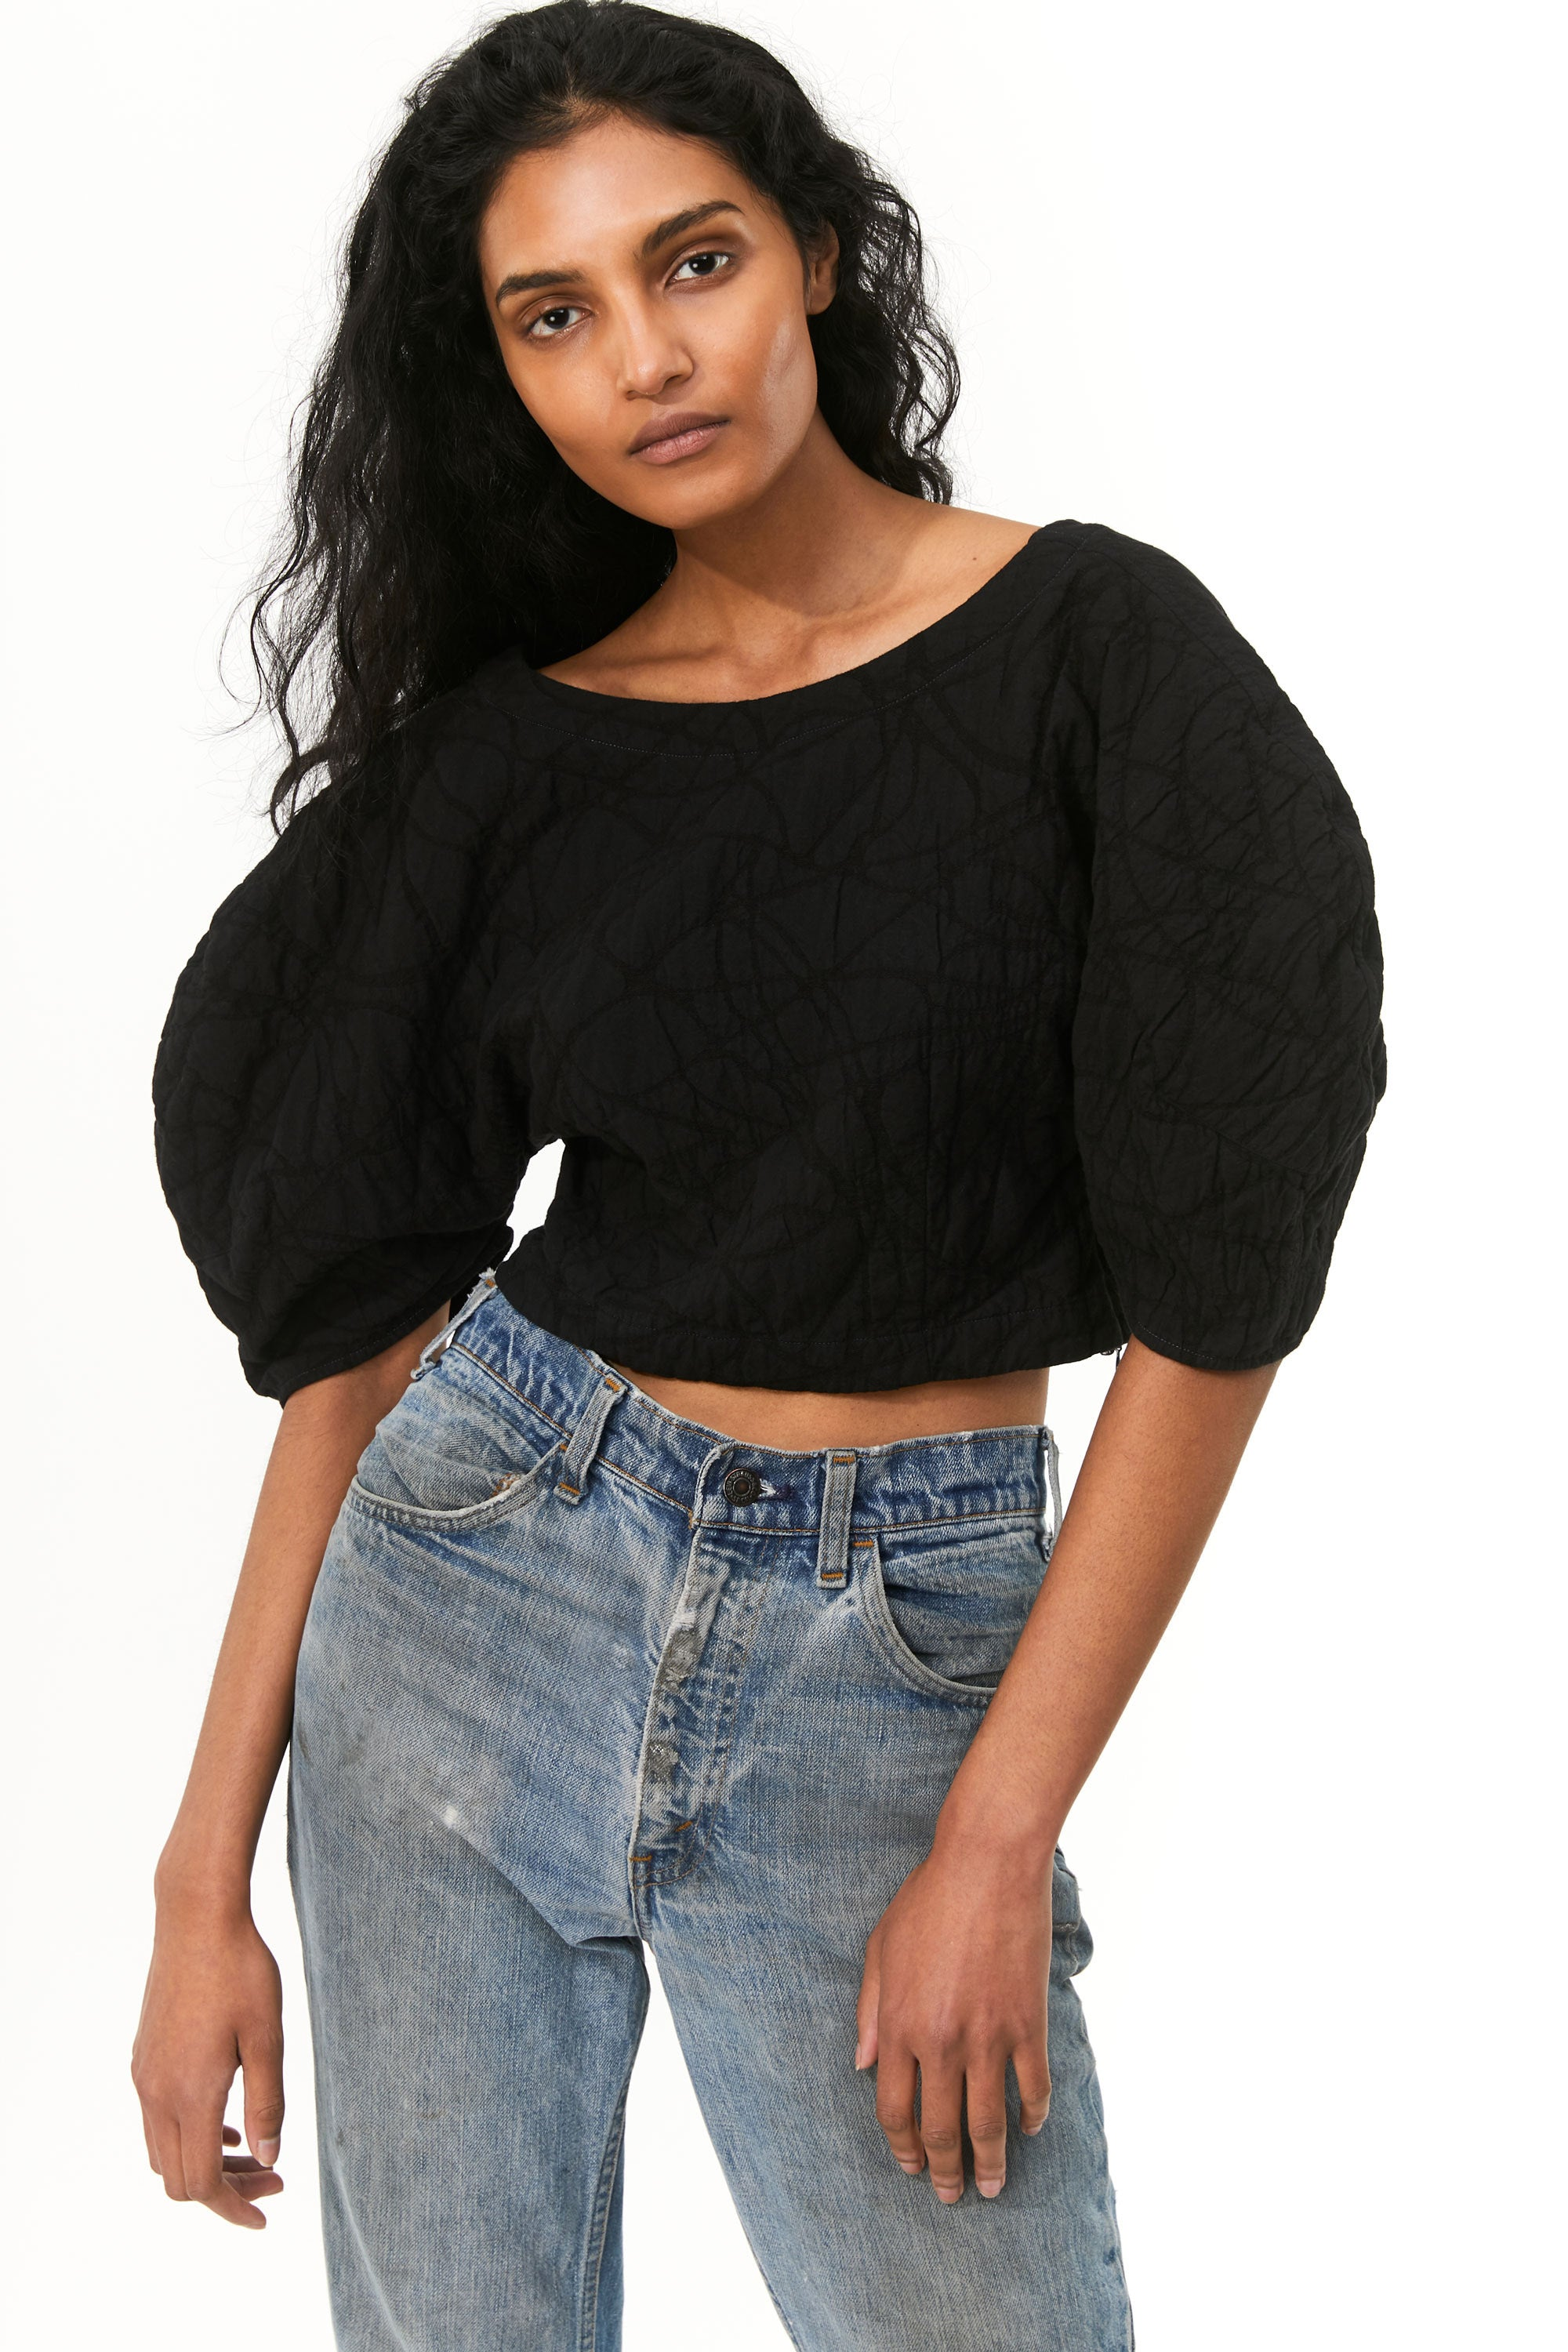 Mara Hoffman Black Overdyed Peni Top in organic cotton and linen (paired with jeans)